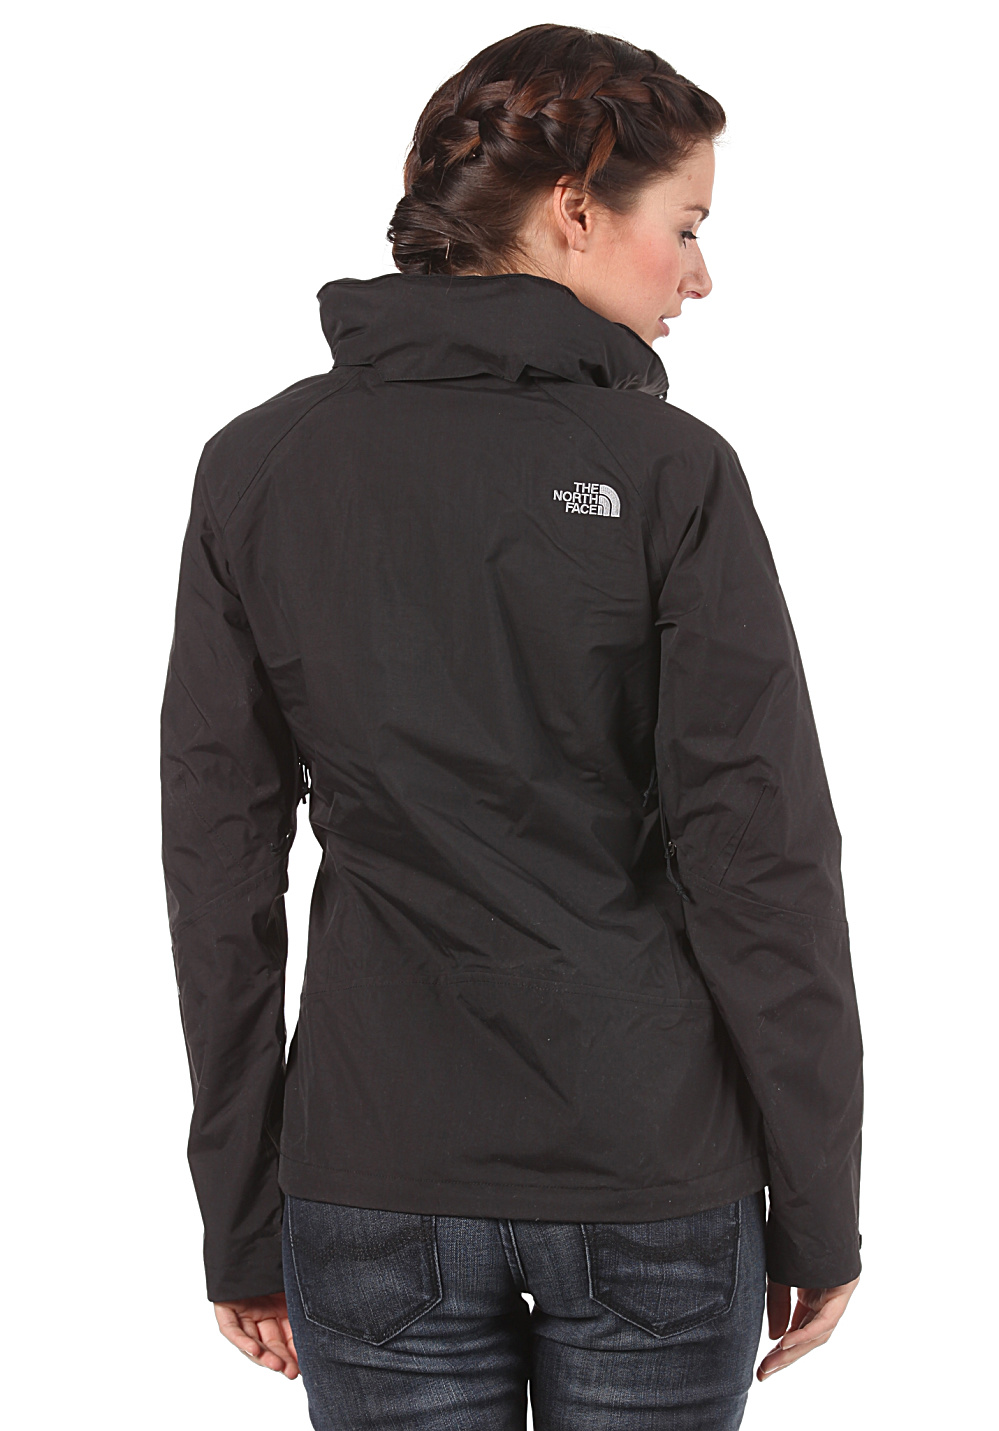 a28571f016f2 Next. -20%. This product is currently out of stock. THE NORTH FACE. StraTos  Jacket - Functional Jacket for Women